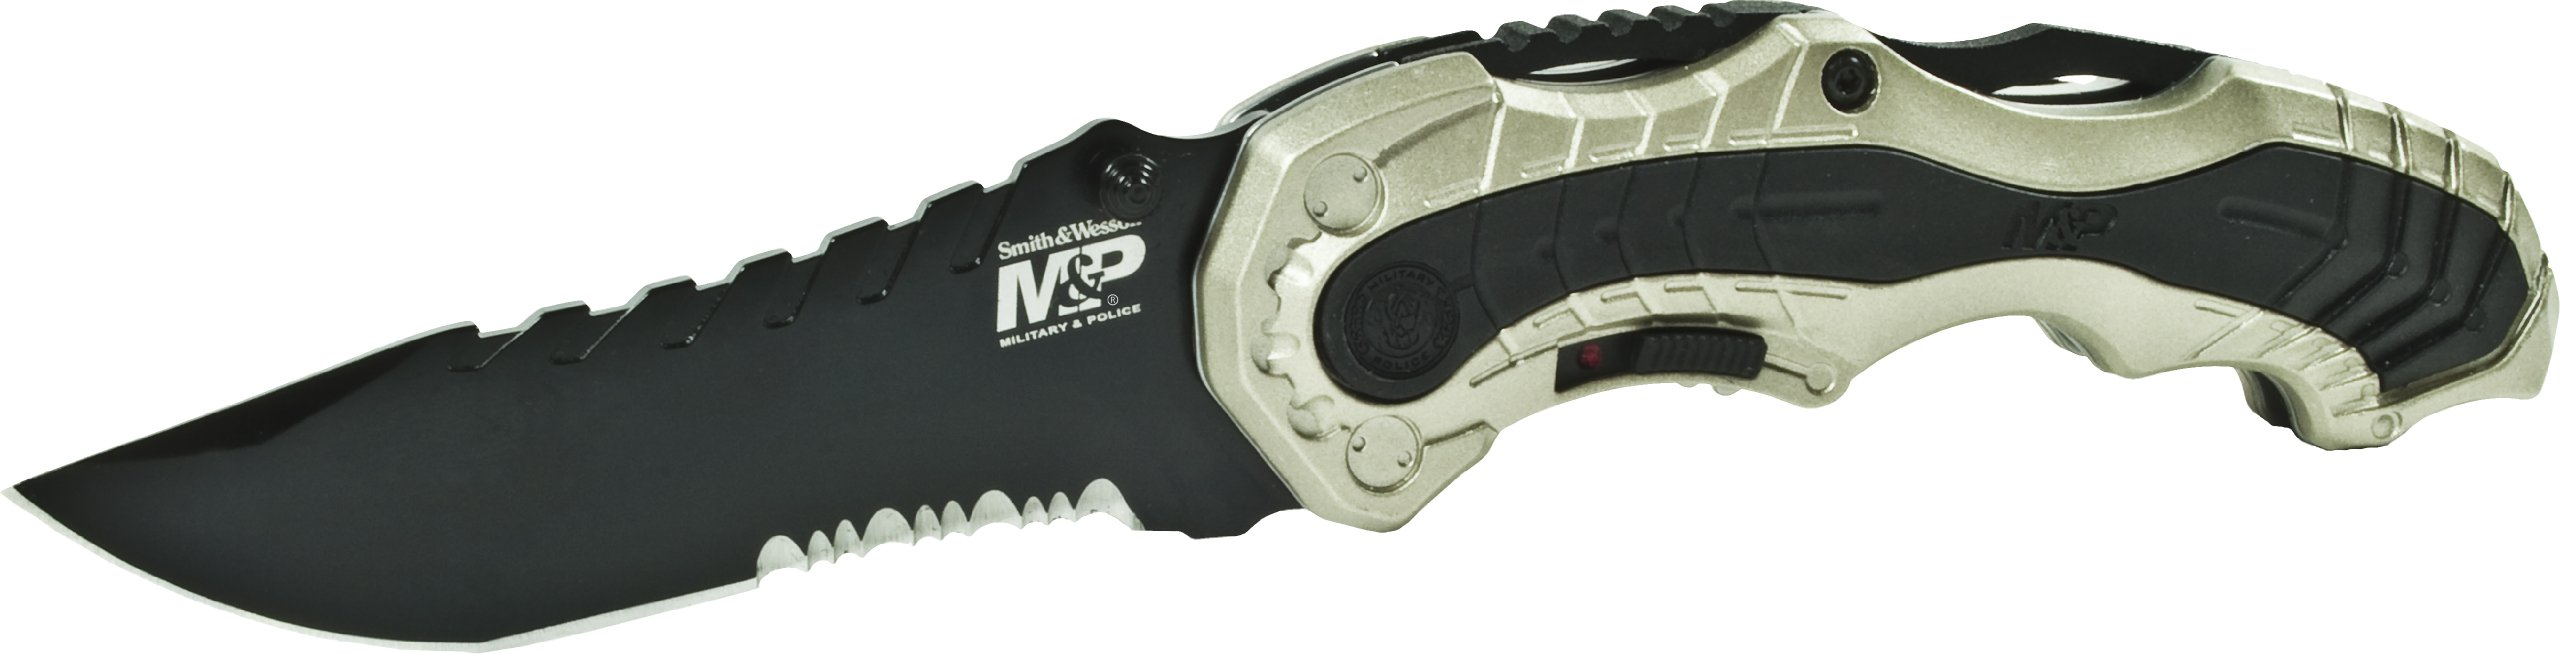 Smith & Wesson Military & Police SWMP6CNS M.A.G.I.C. Assisted Opening Liner Lock Folding Knife